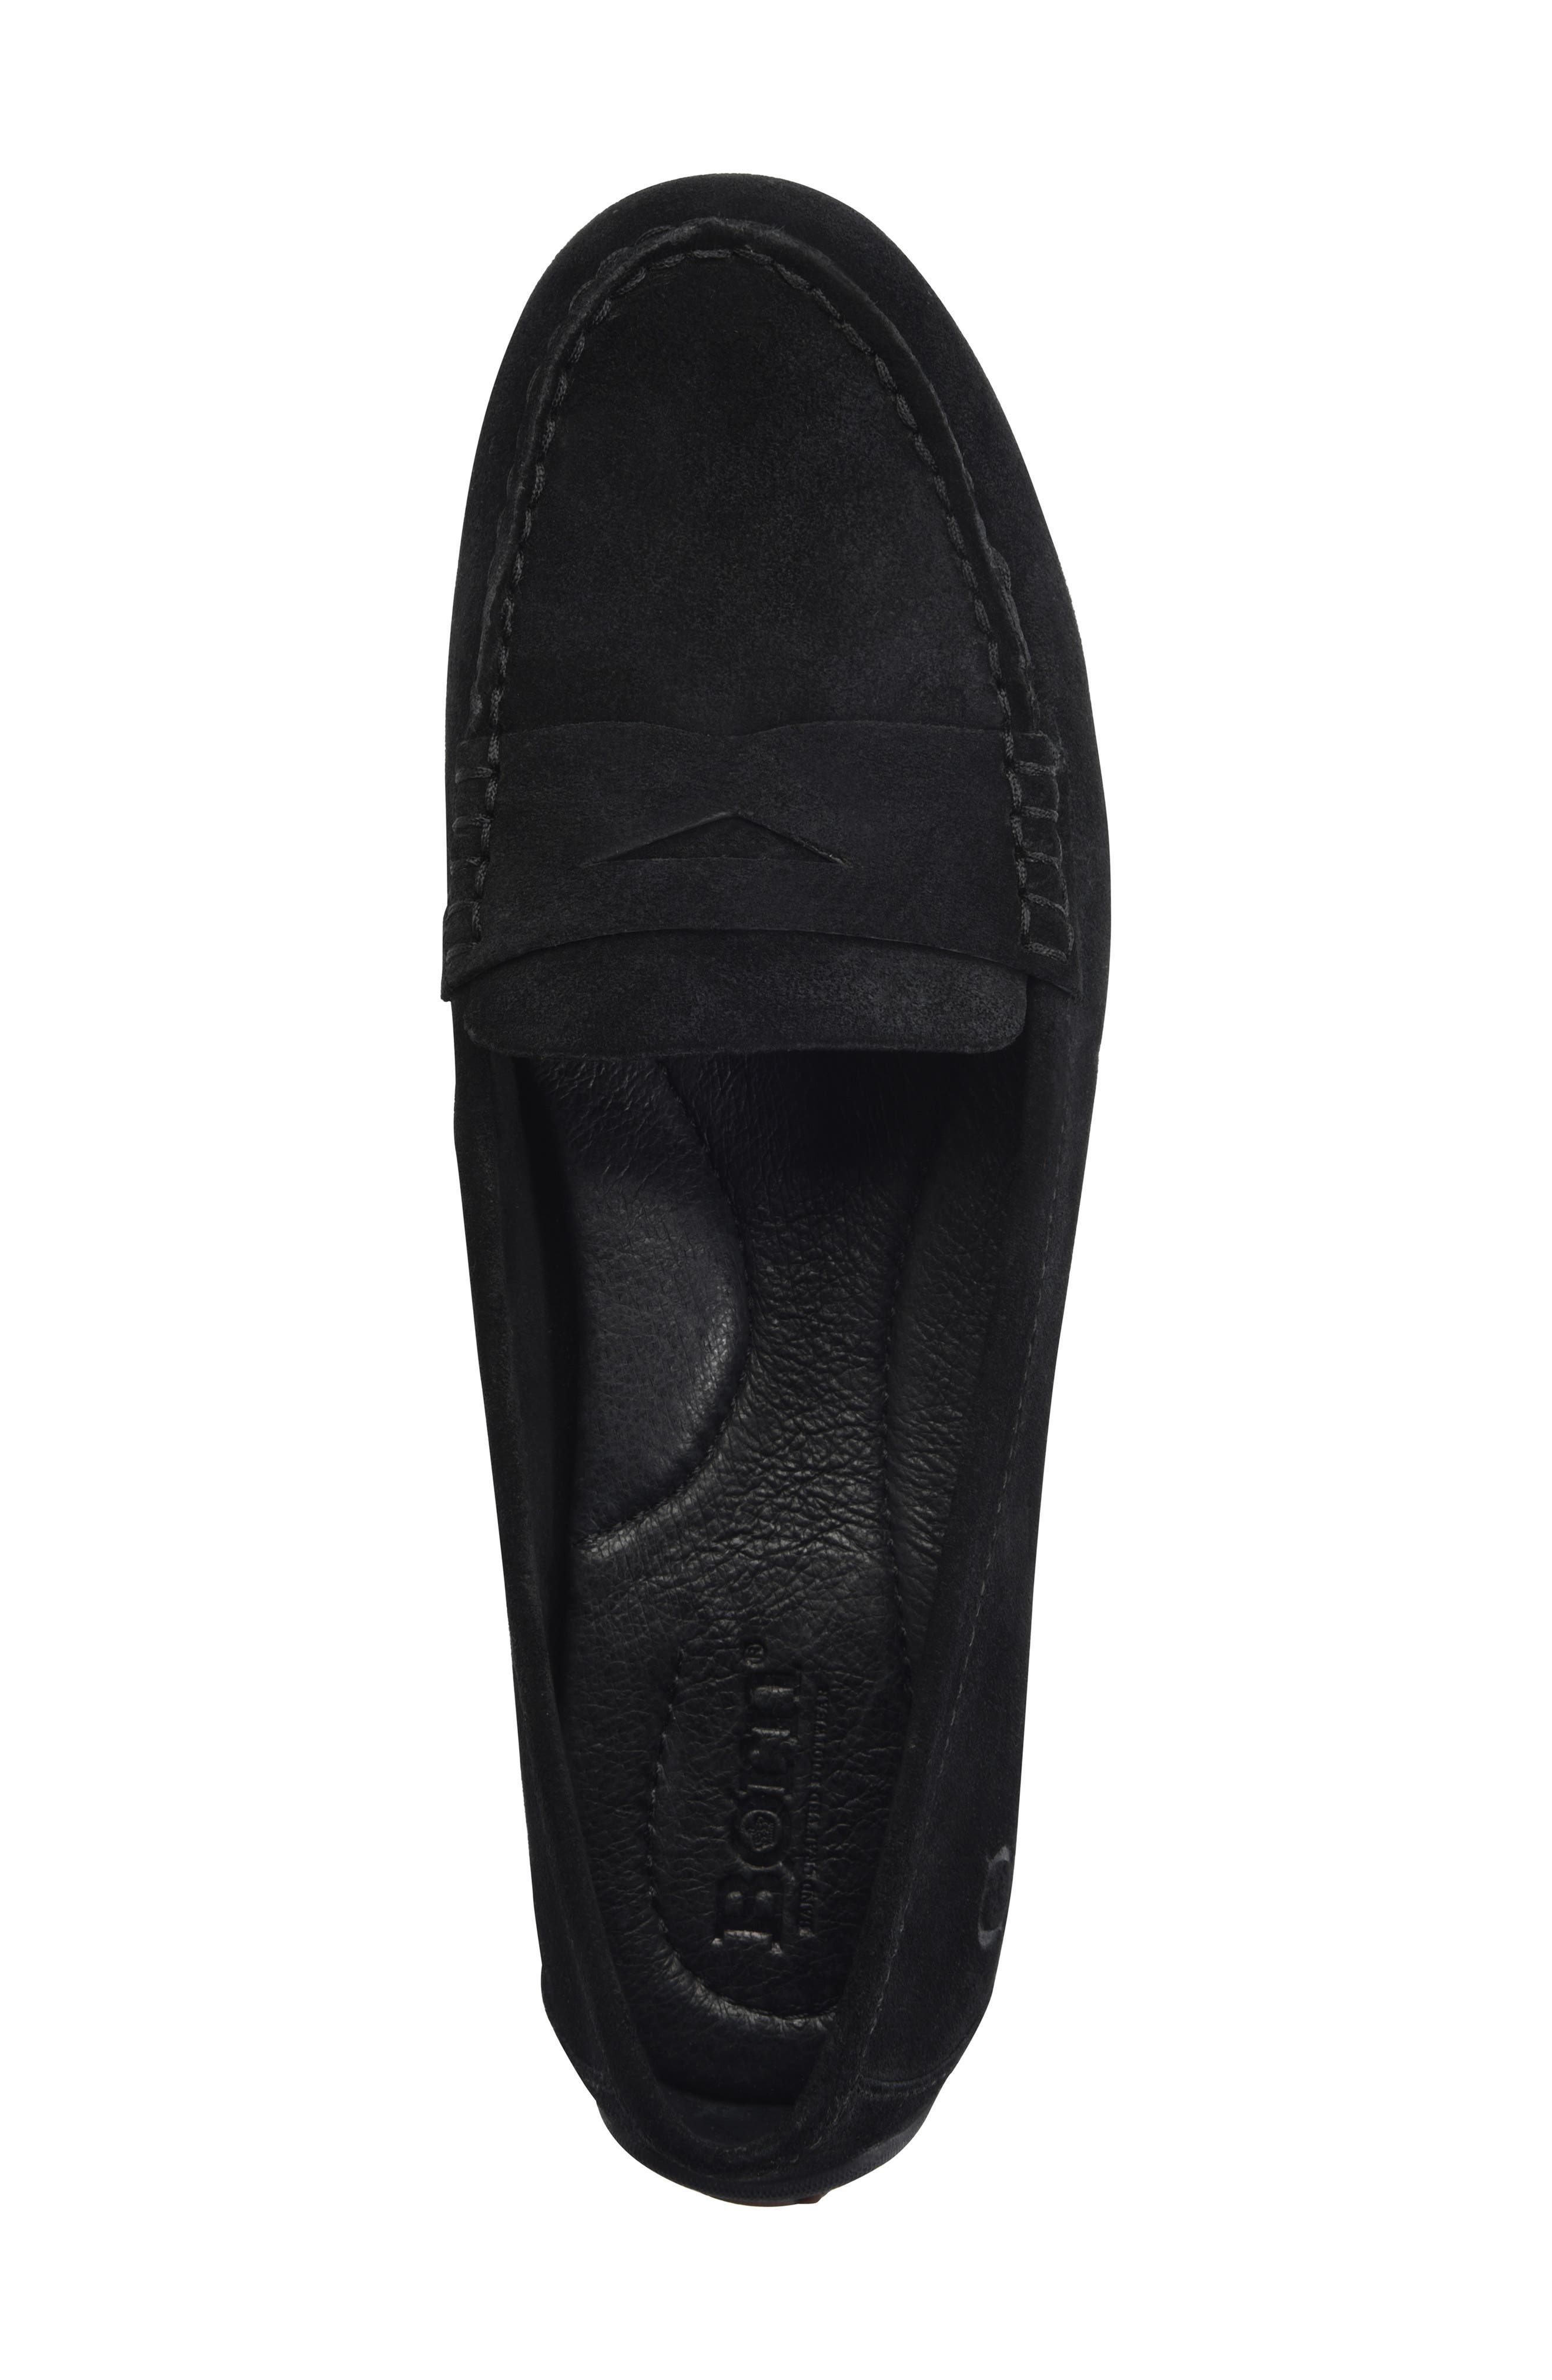 Malena Penny Loafer,                             Alternate thumbnail 5, color,                             BLACK SUEDE